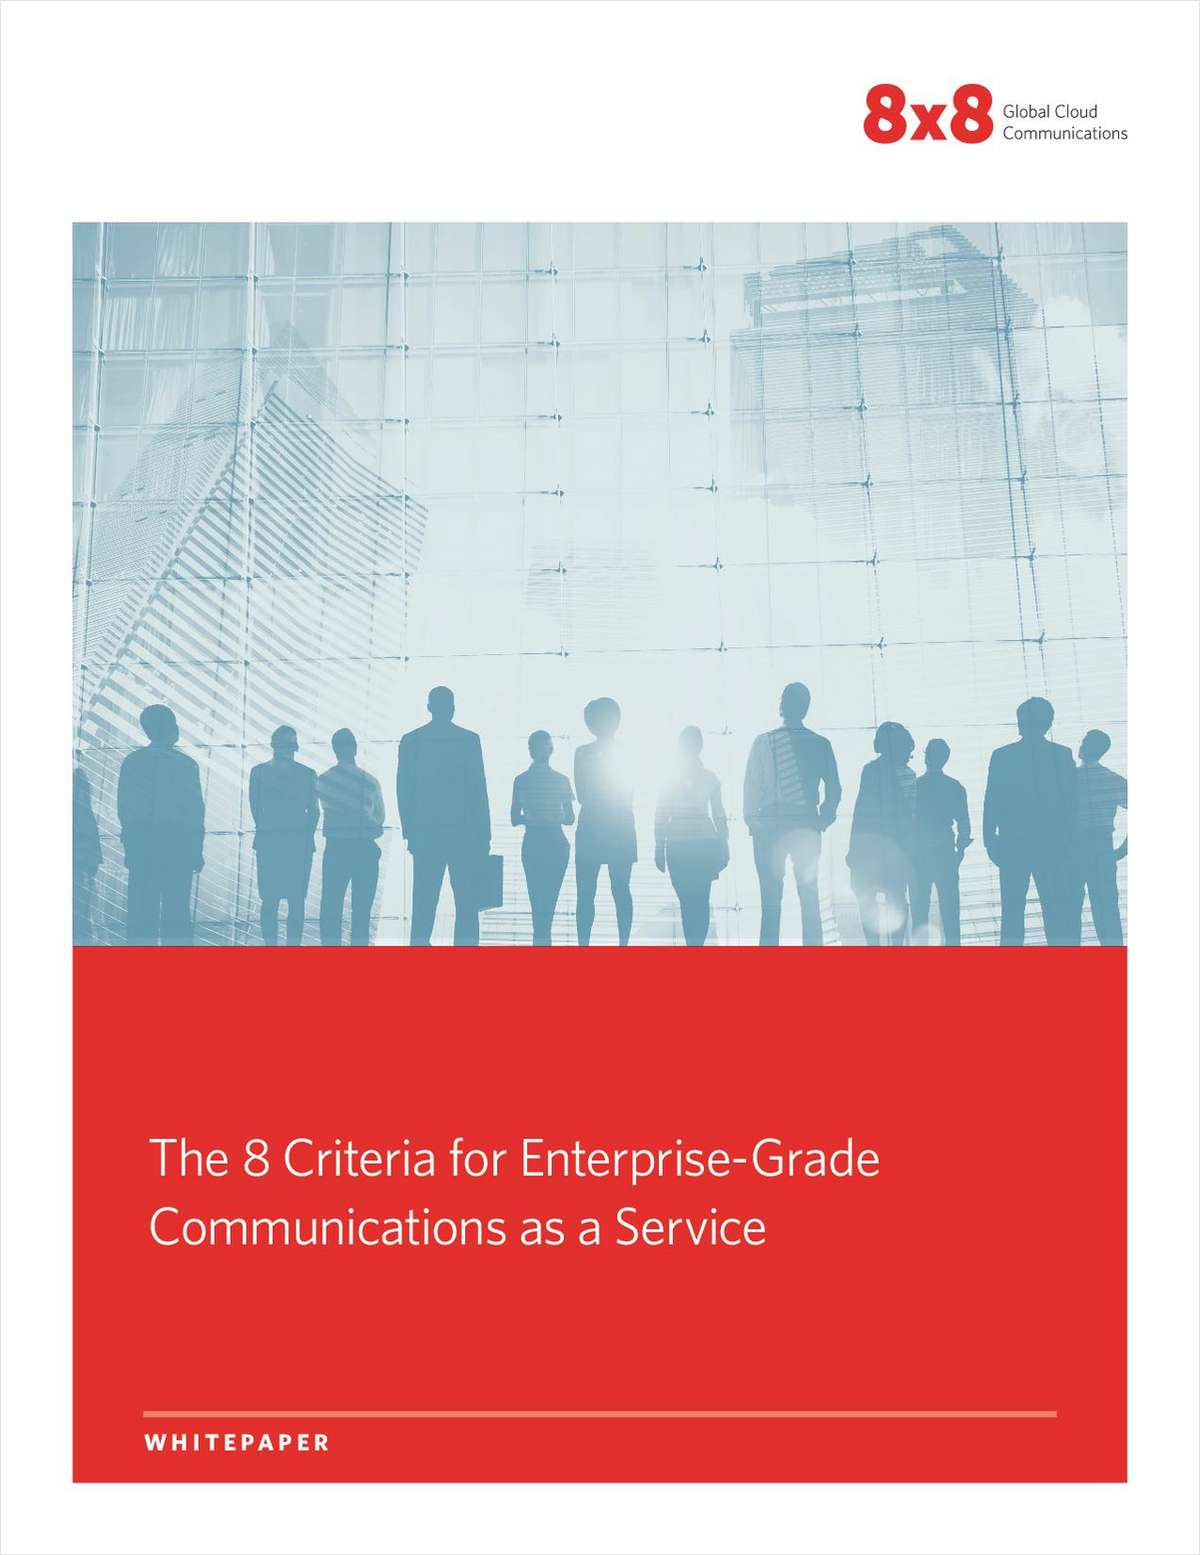 The 8 Criteria for Enterprise-Grade Communications as a Service